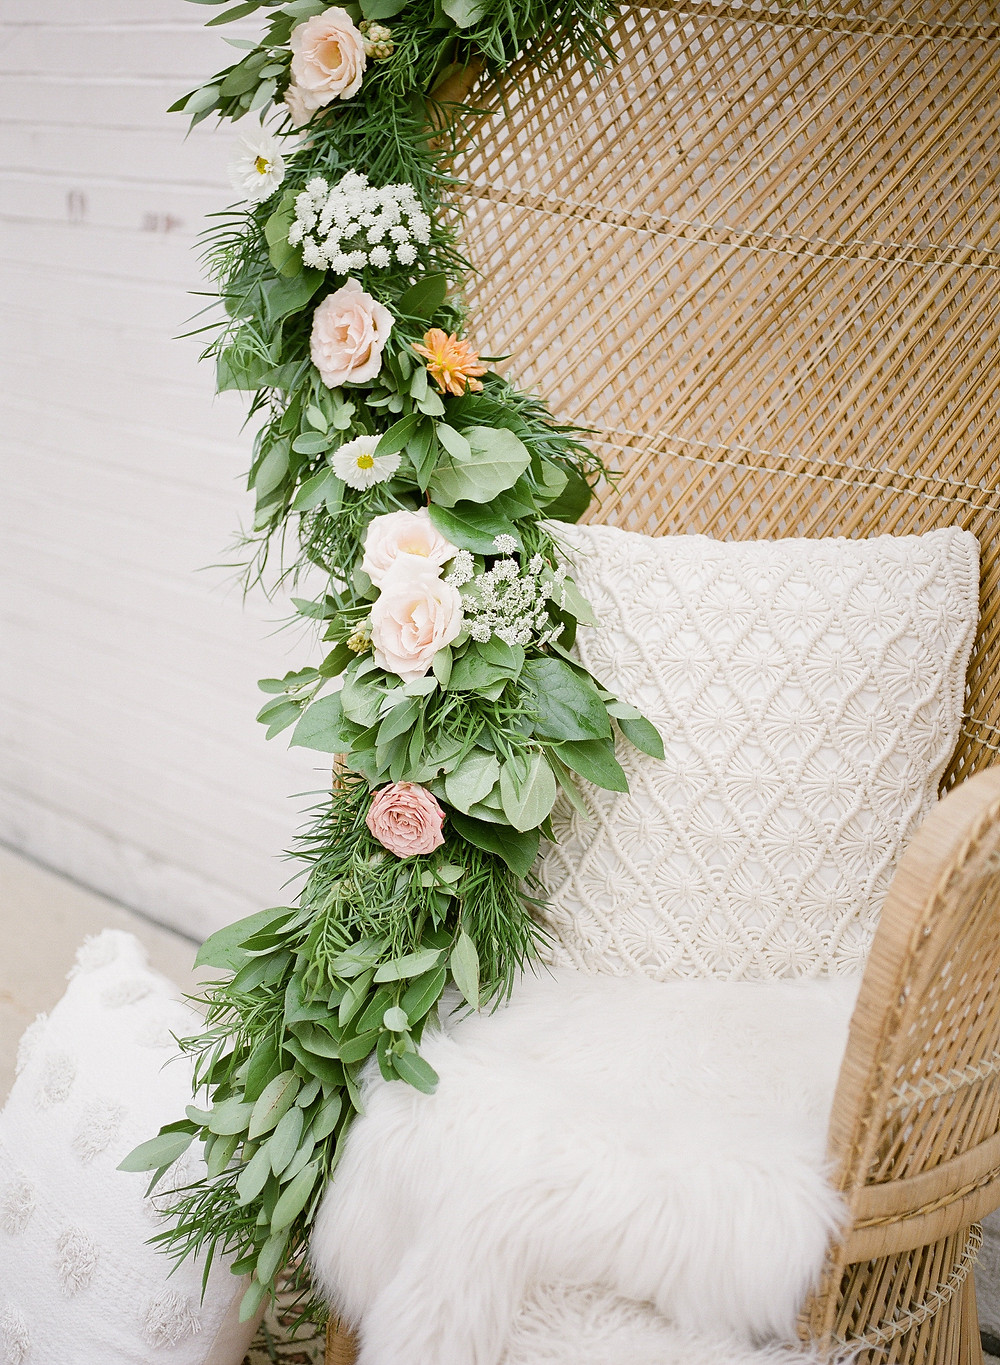 wicker peacock chair with macramé and faux fur pillows decorated with floral and greenery garland by studio bloom iowa